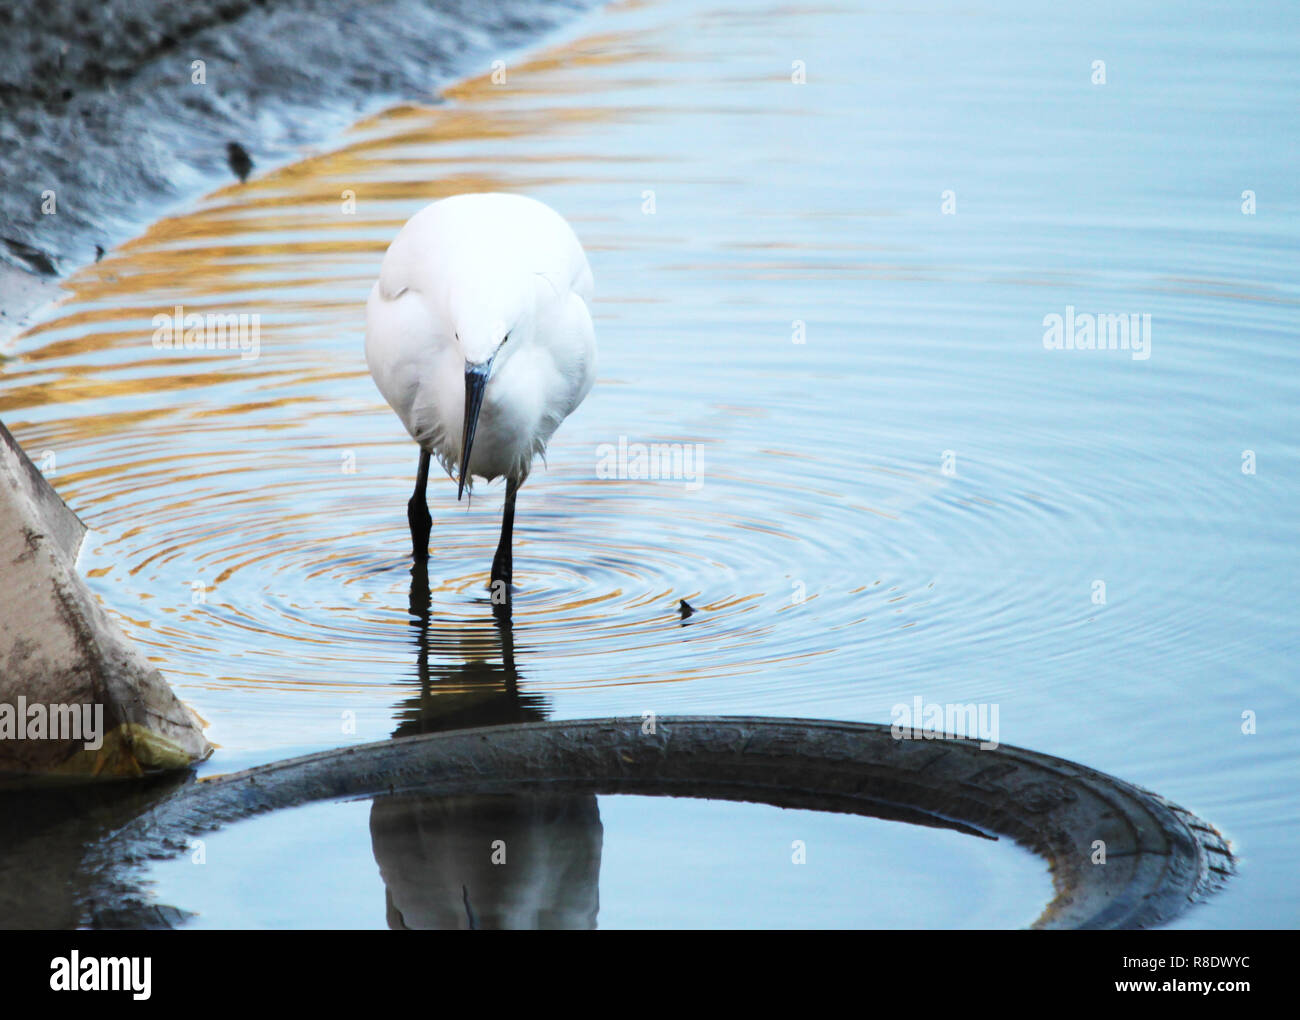 A heron (Egretta garzetta) looking for food among old tires abandoned in the river. Pollution and environment concept. - Stock Image